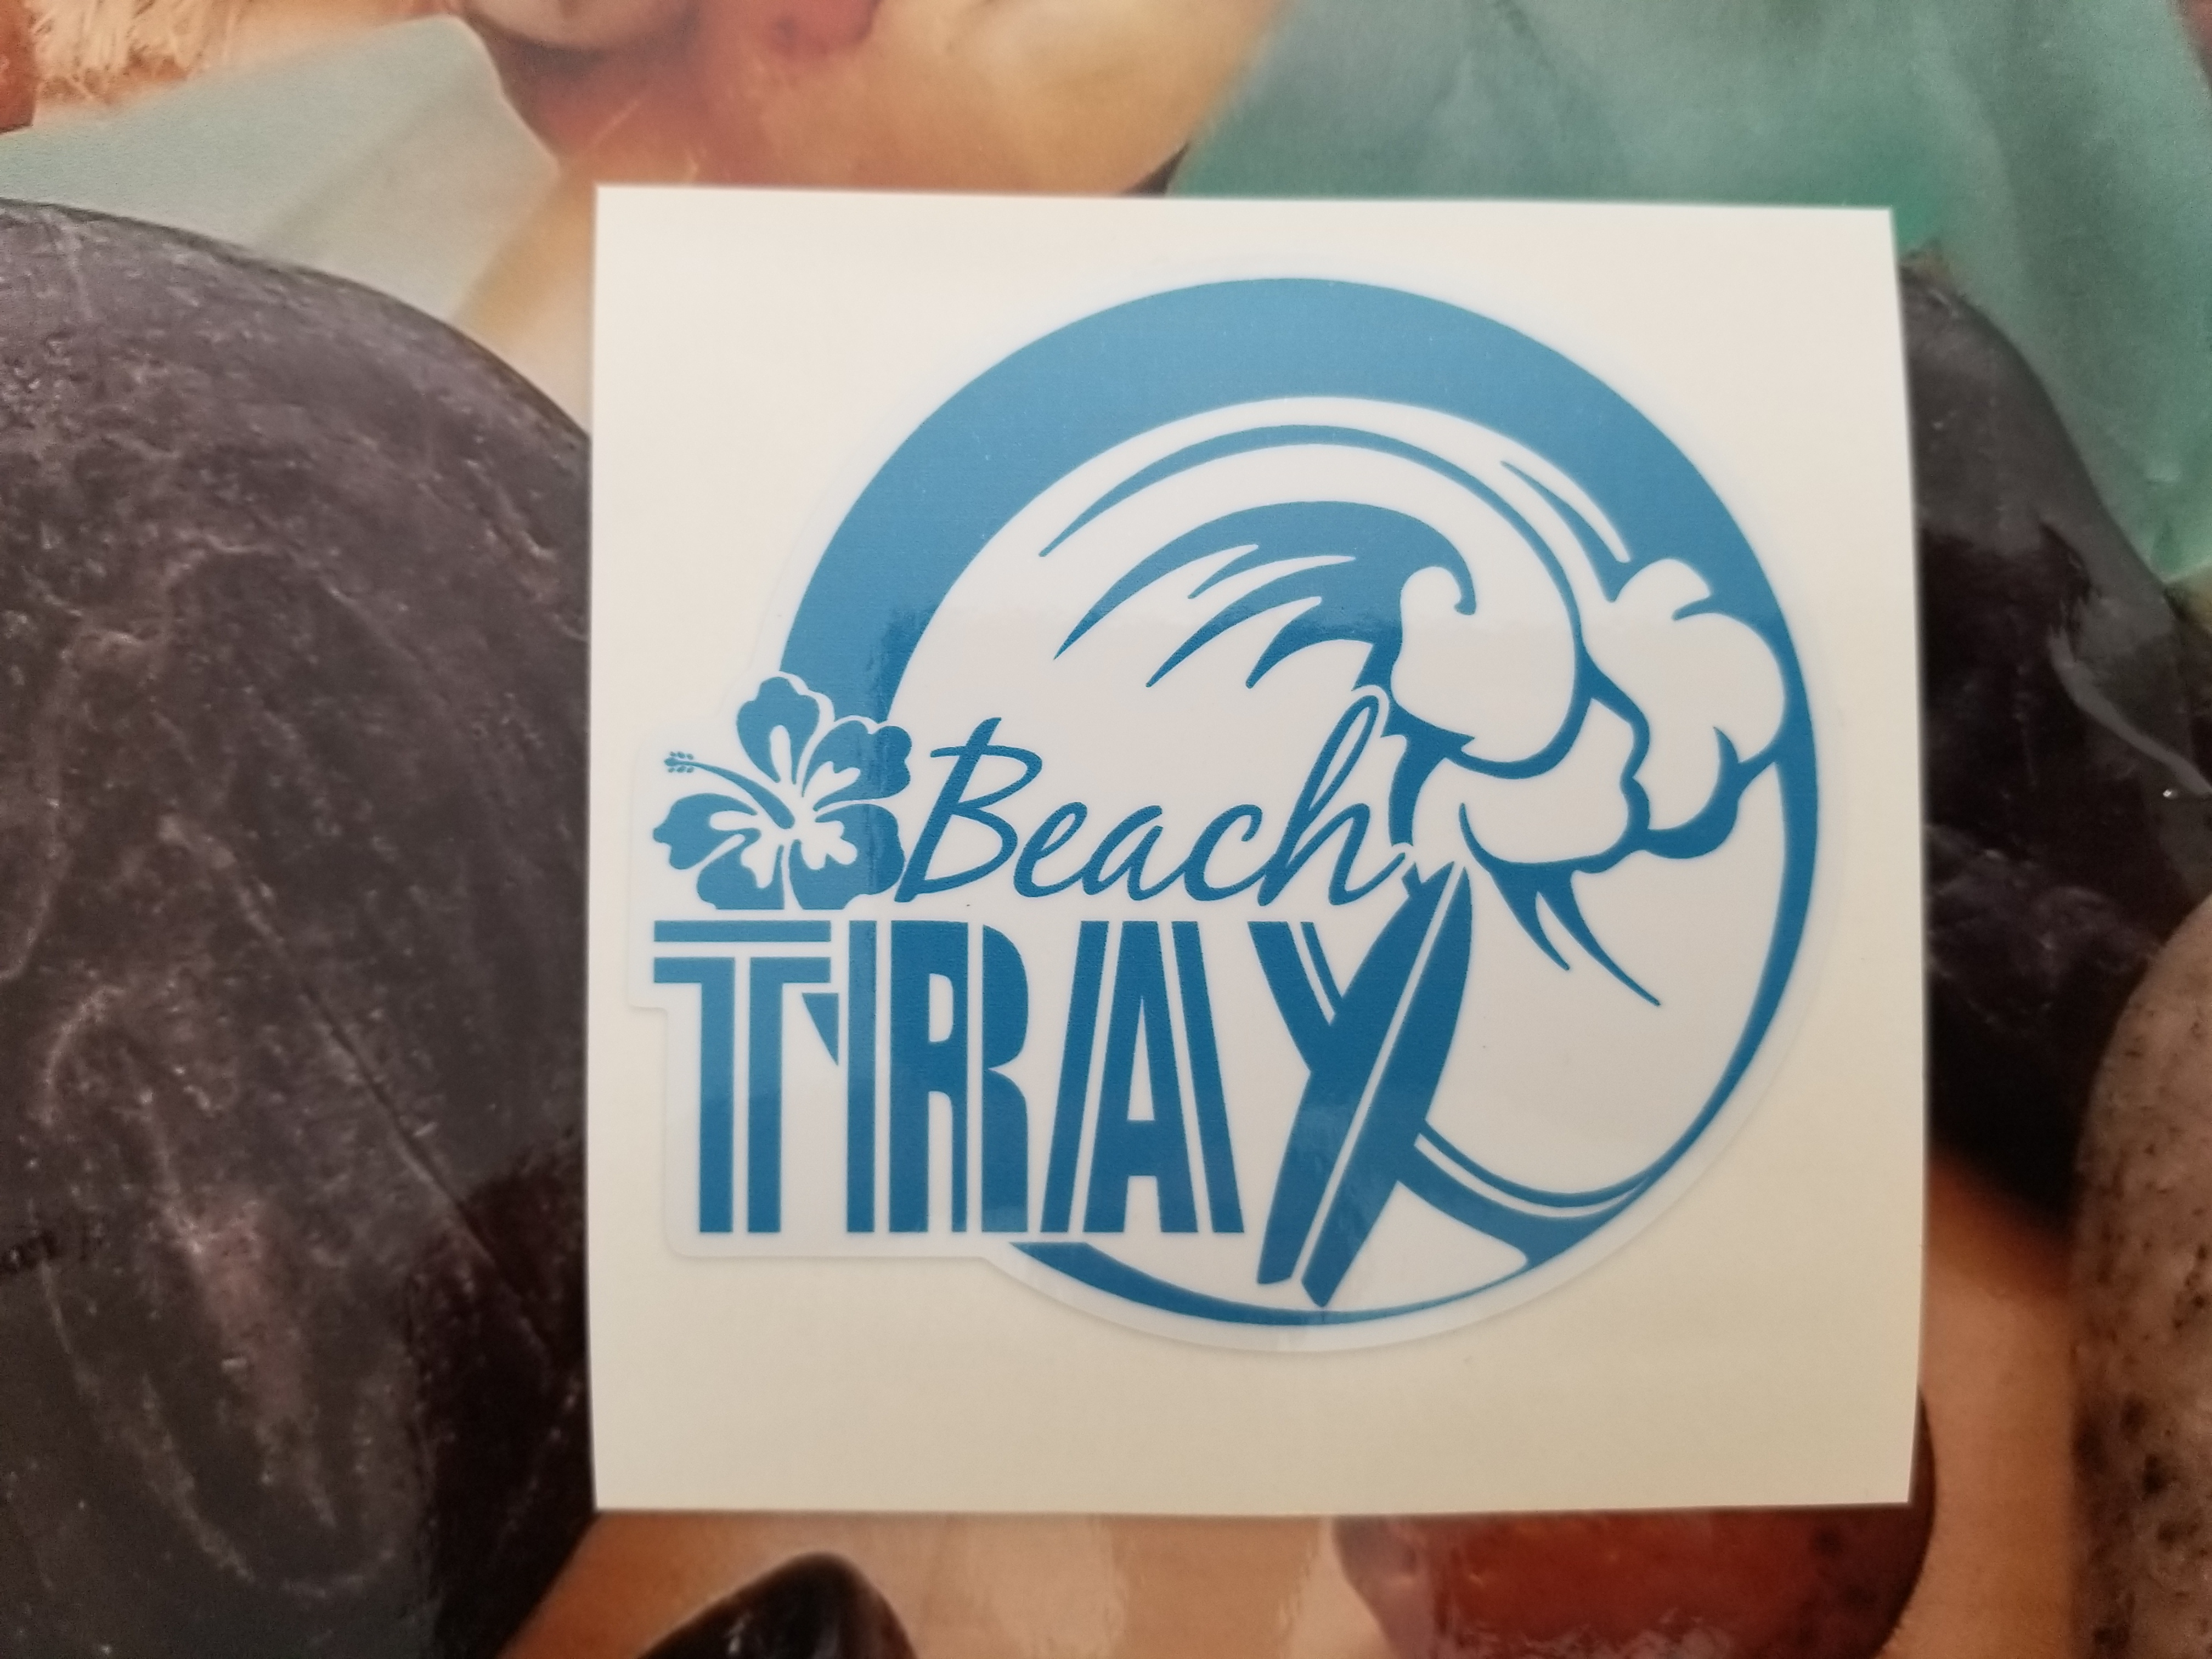 Full color printed and contour cut custom cut stickers